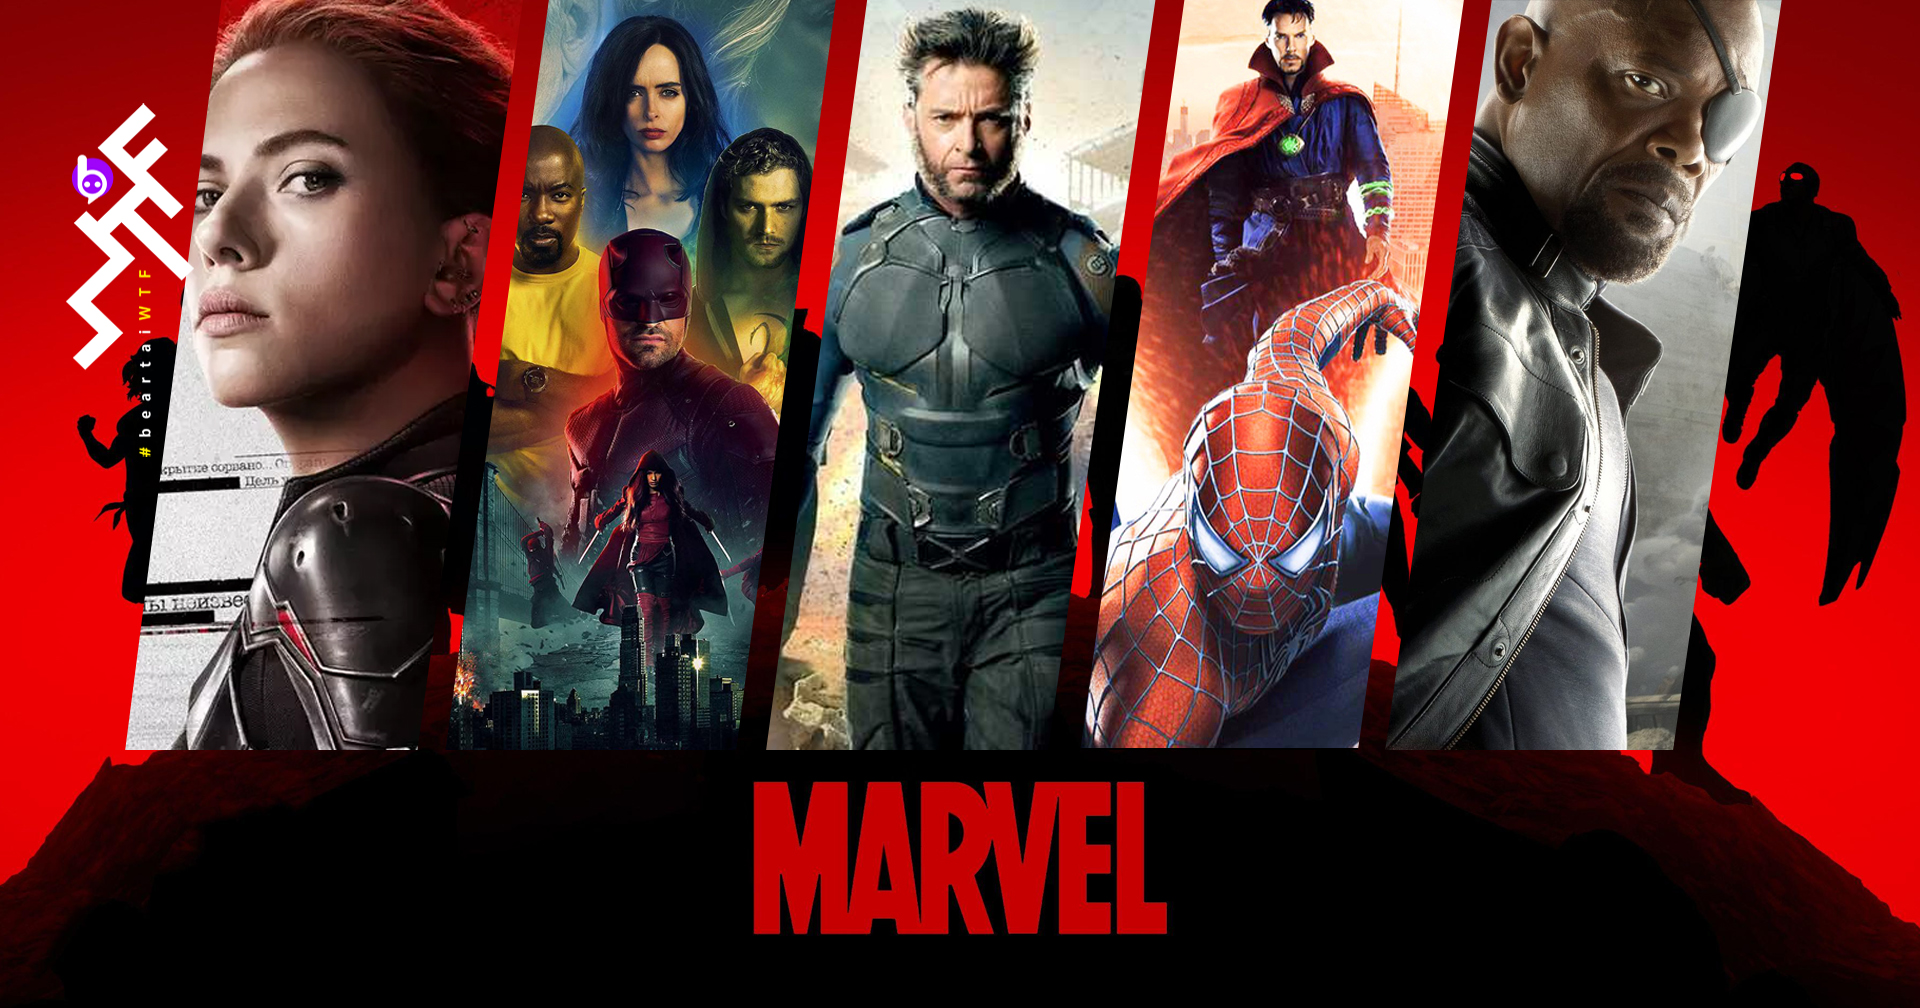 Marvel Update from Kevin Feige